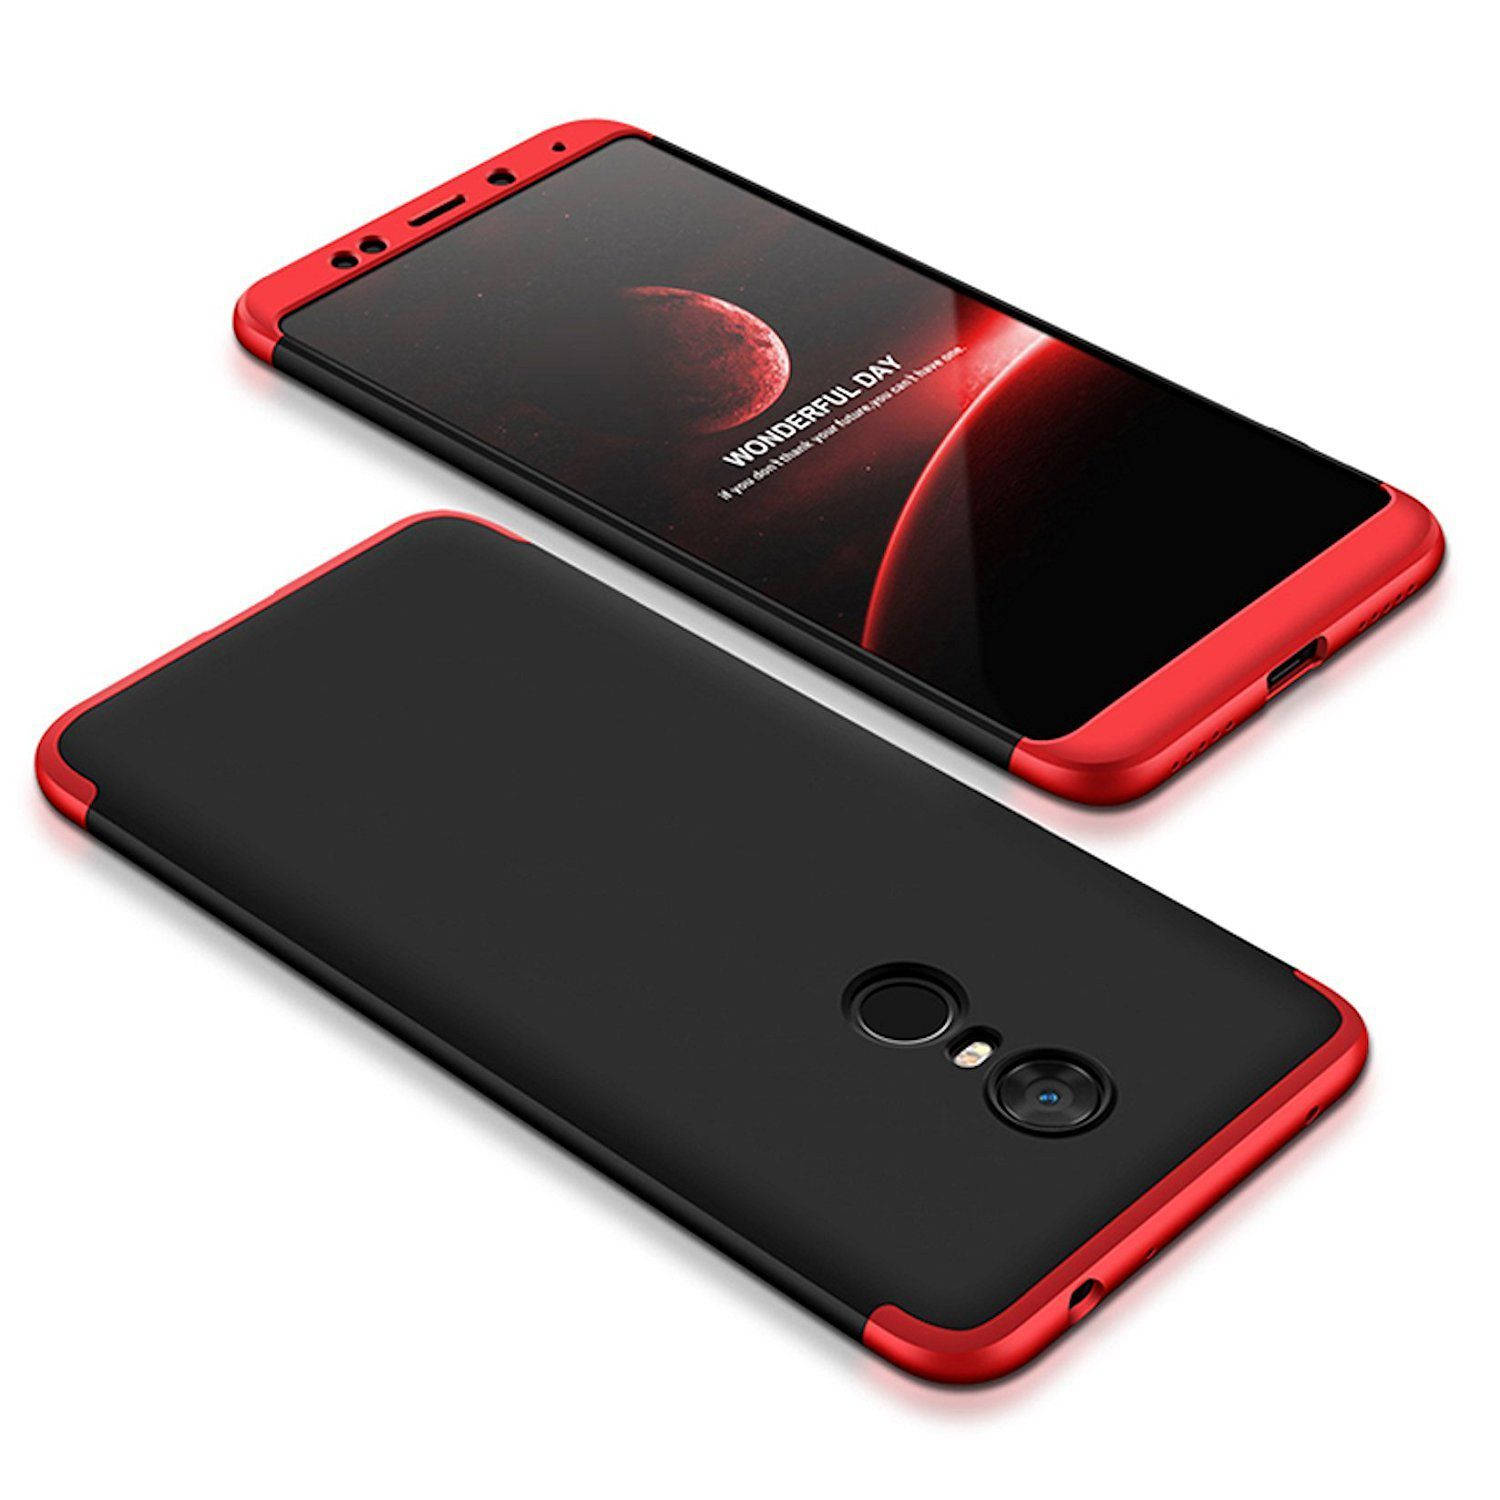 reputable site e2717 0b255 Xiaomi Redmi Note 5 Plain Cases Slim Fit Shock Proof 360 degree protection  2Bro - Red